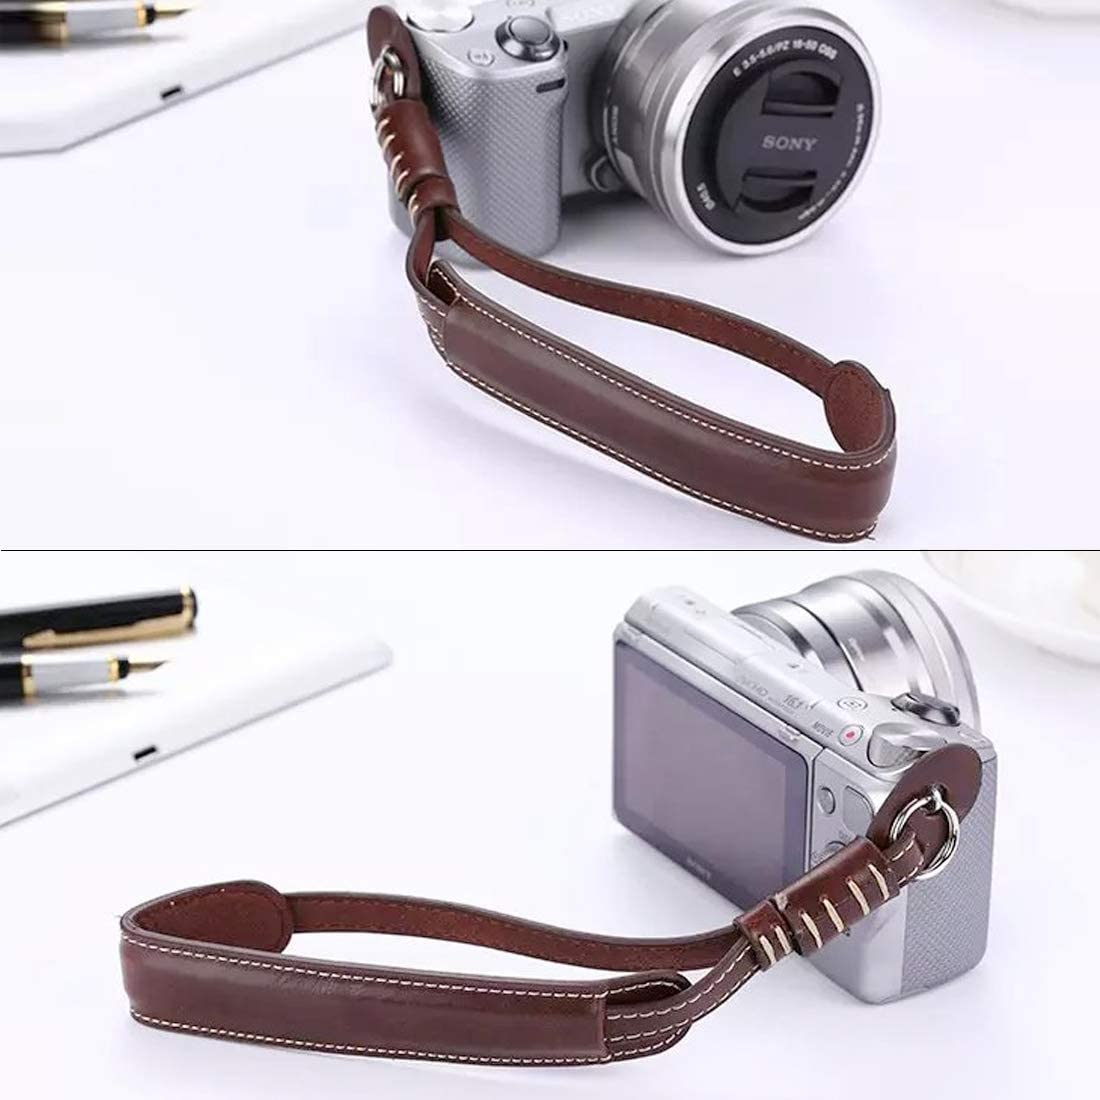 JINGZ Wrist Strap Grip PU Leather Hand Strap for SLR//DSLR Cameras Durable Color : Black